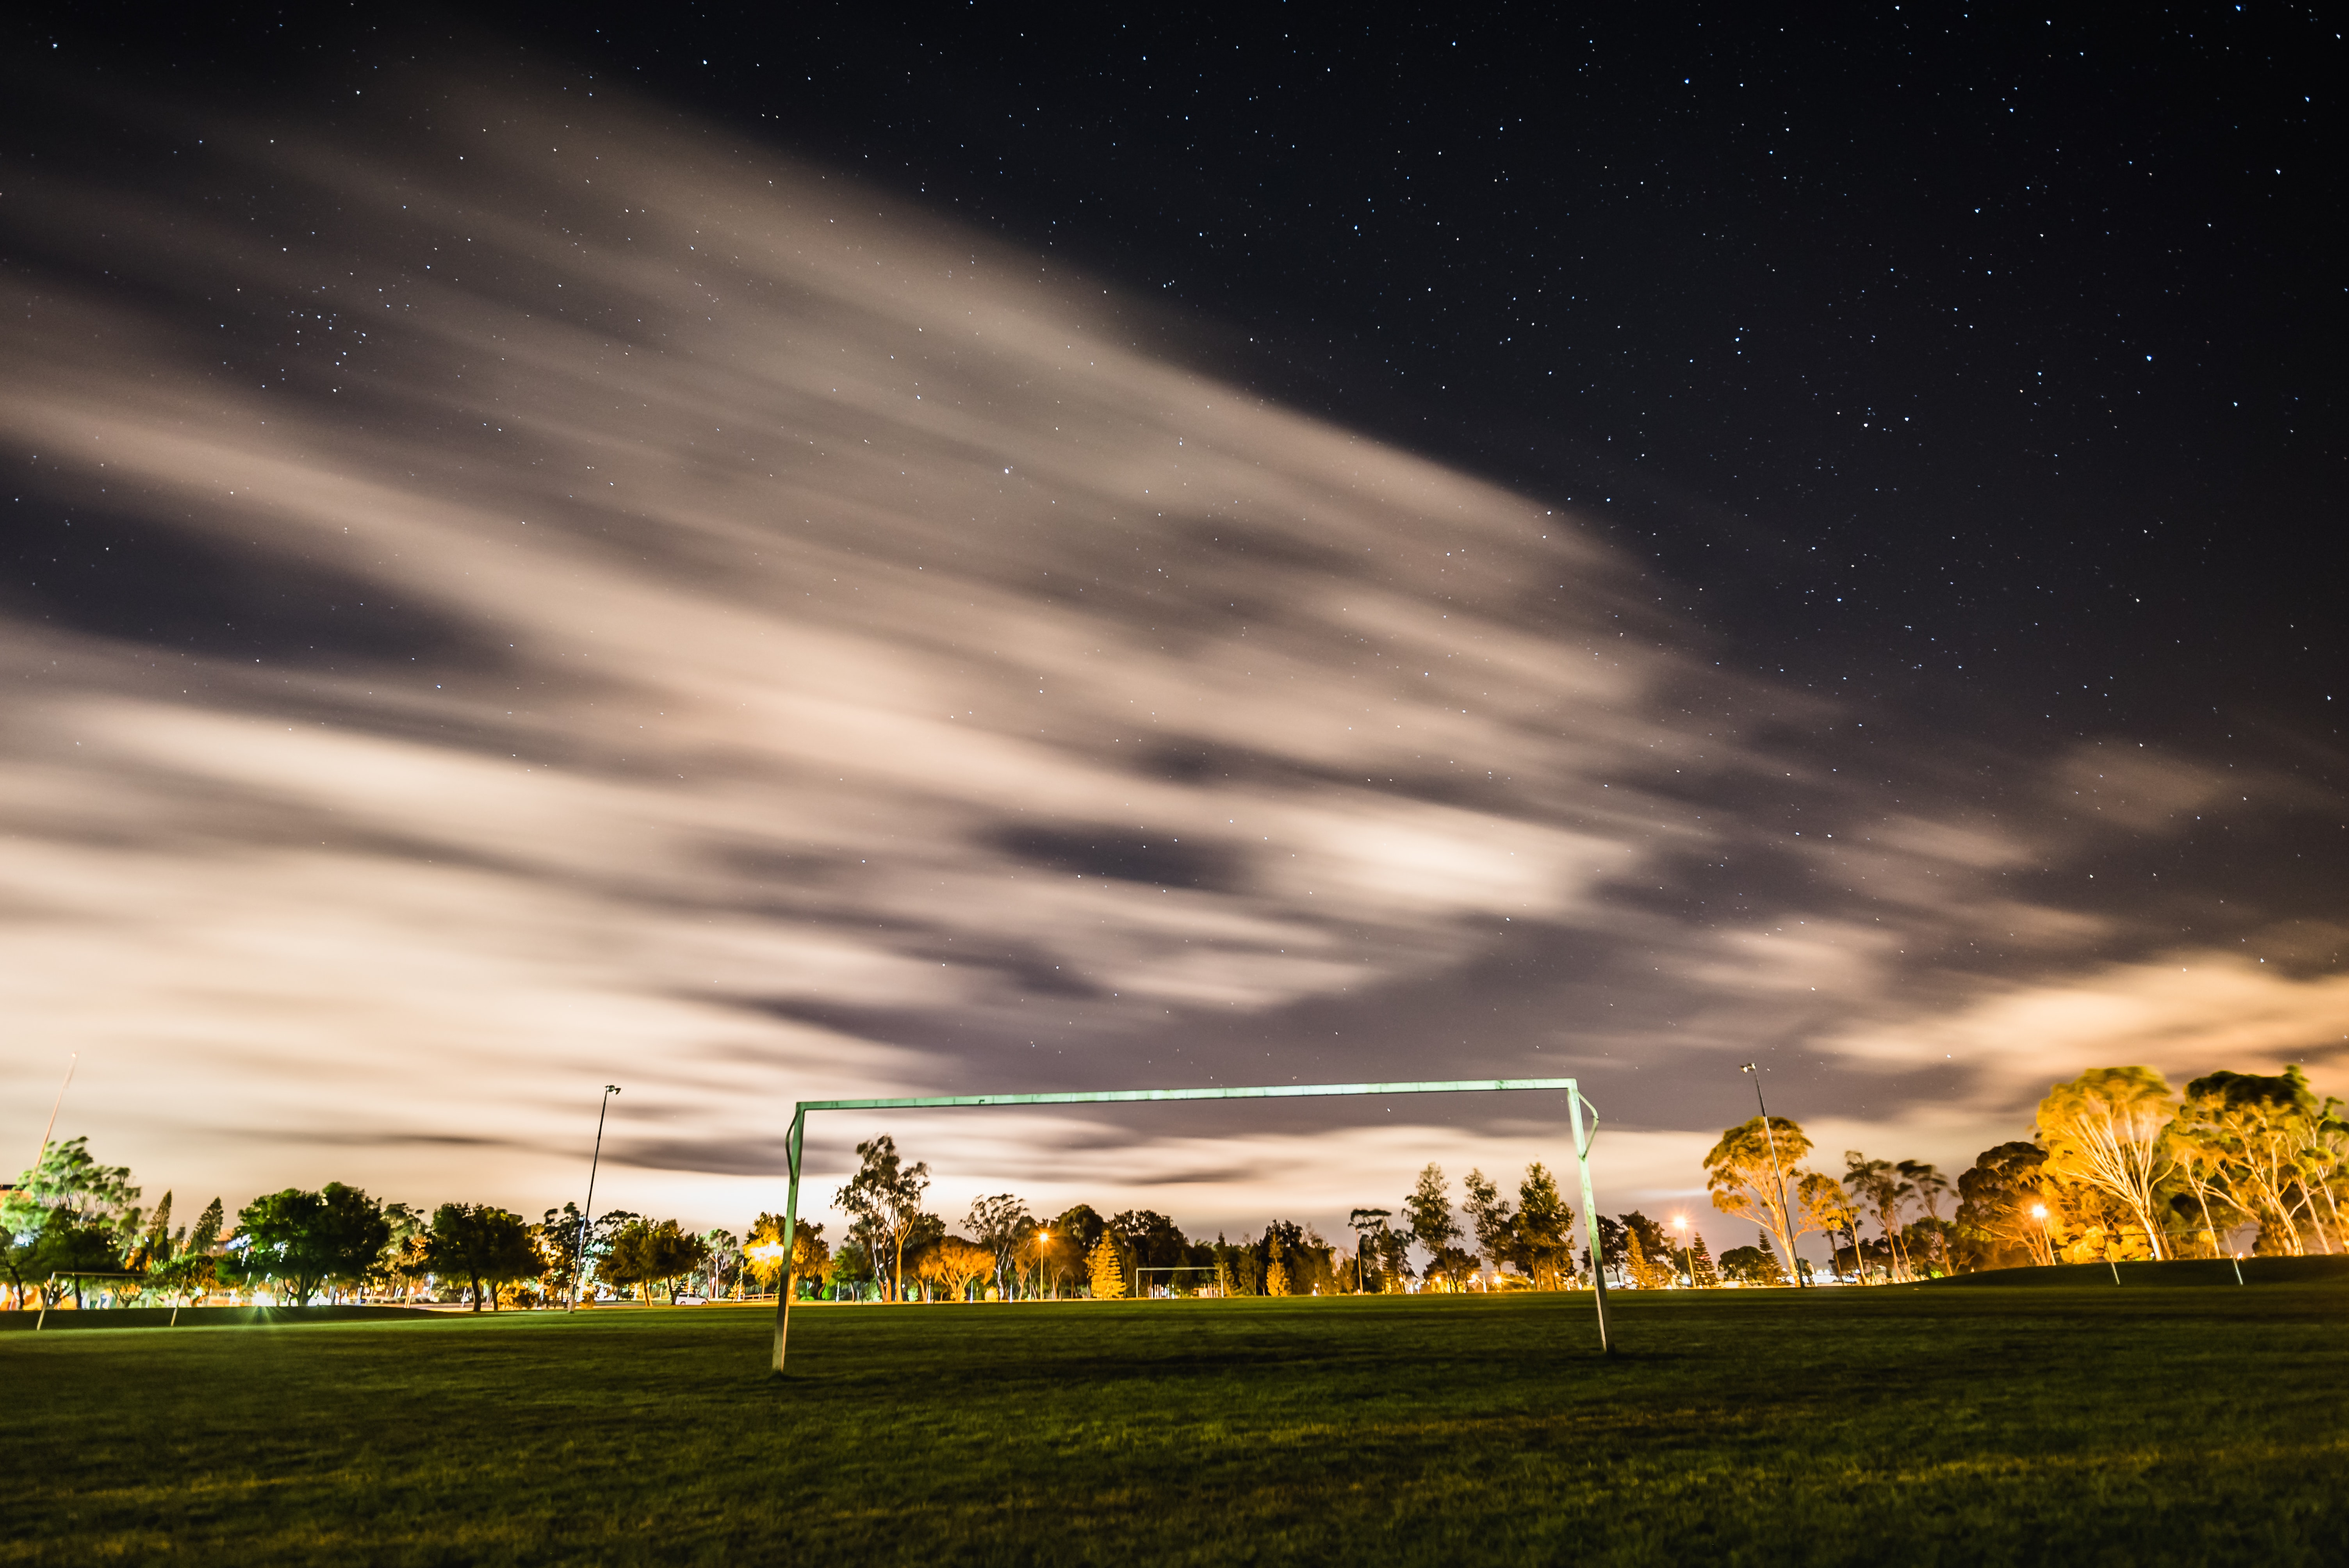 A soccer field at night with stars blurred in the sky